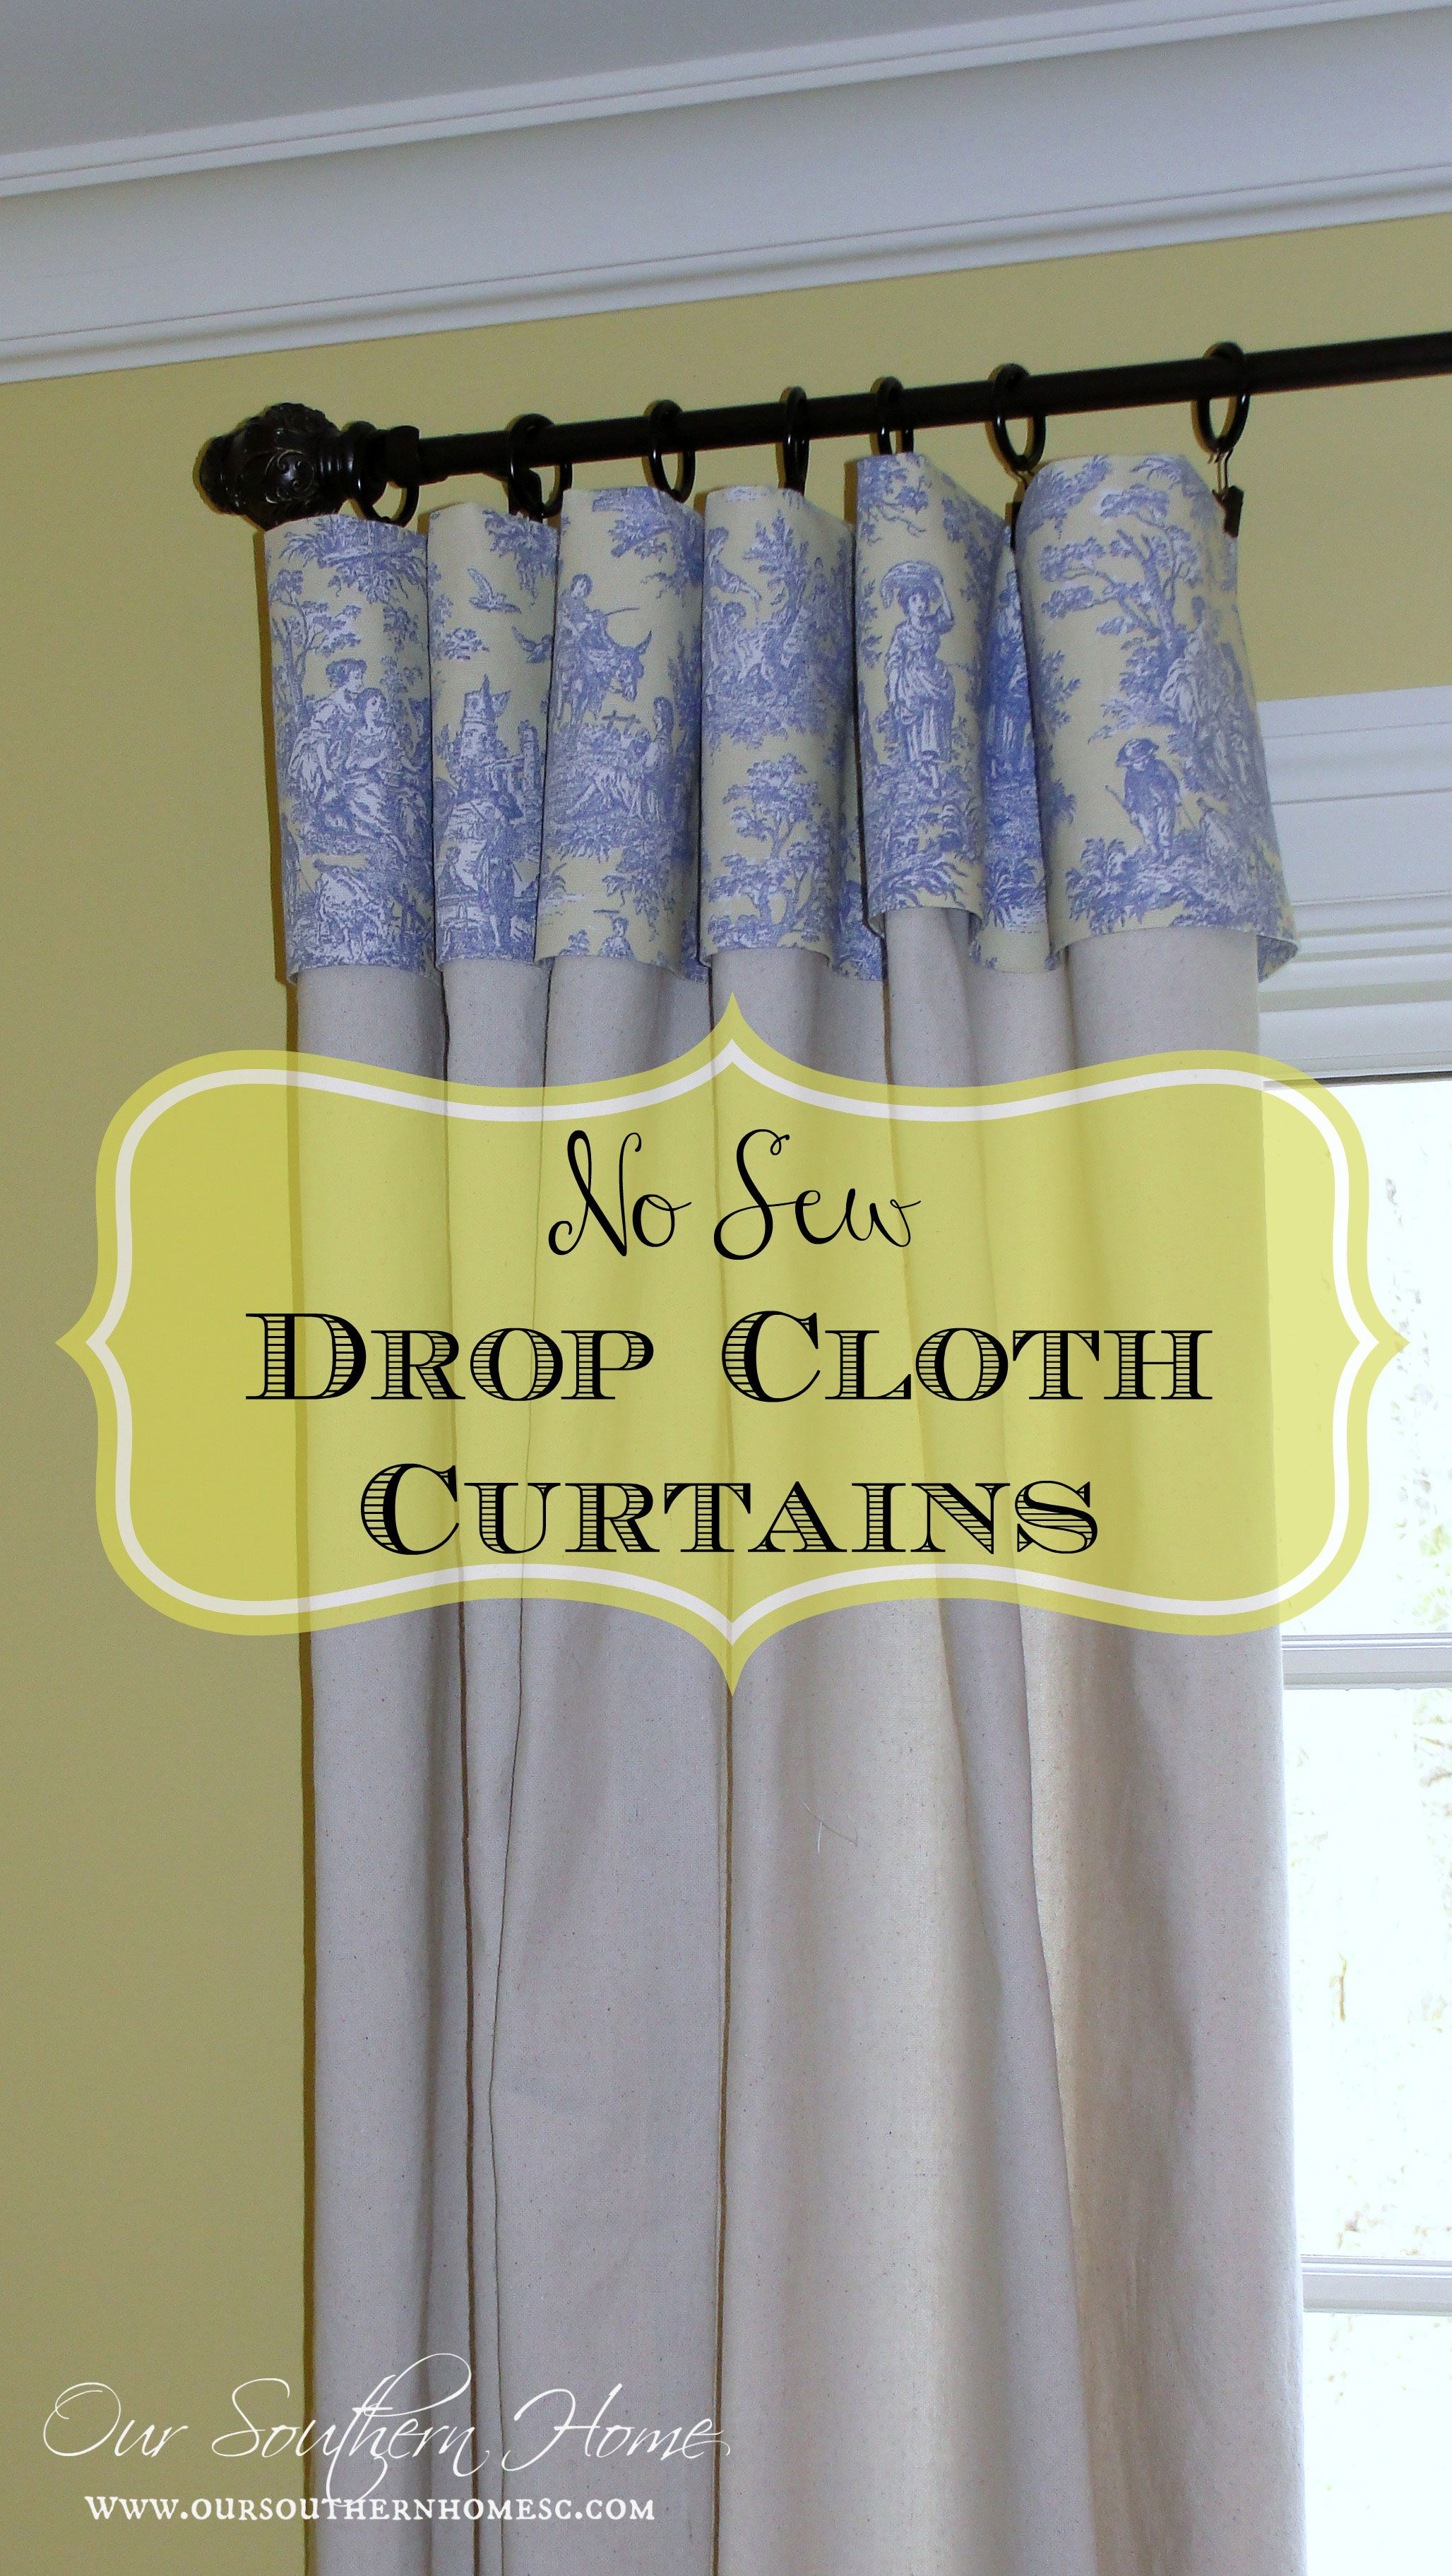 images about curtains on pinterest curtain rods drop cloth